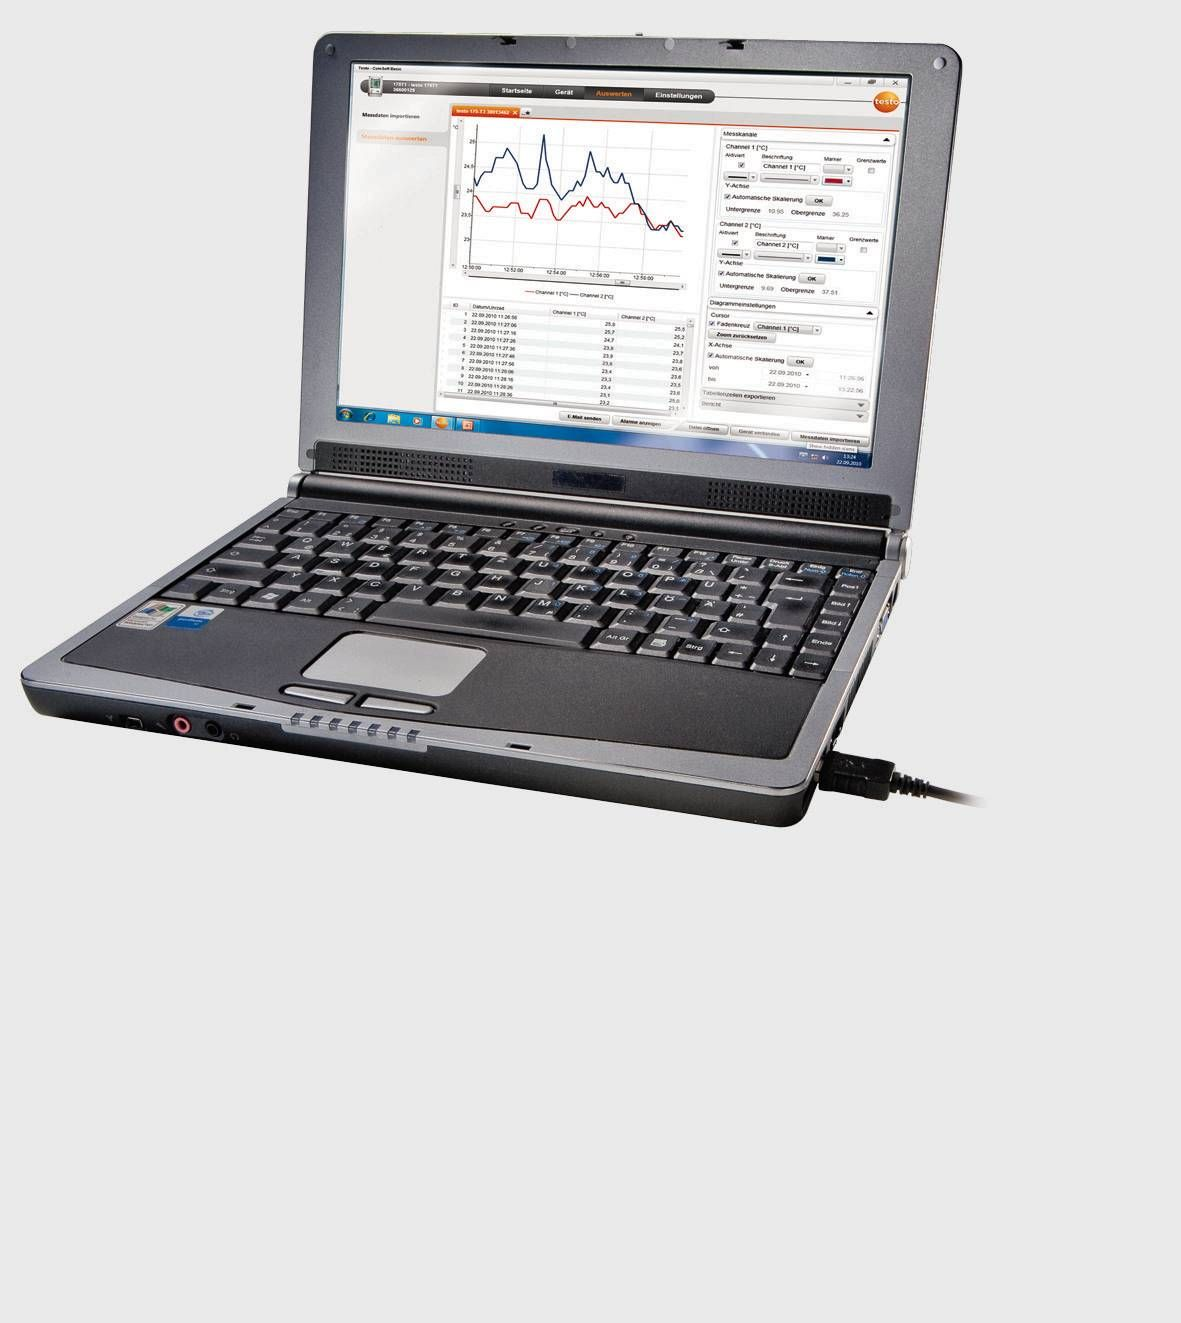 Software ComSoft for pressure data loggers